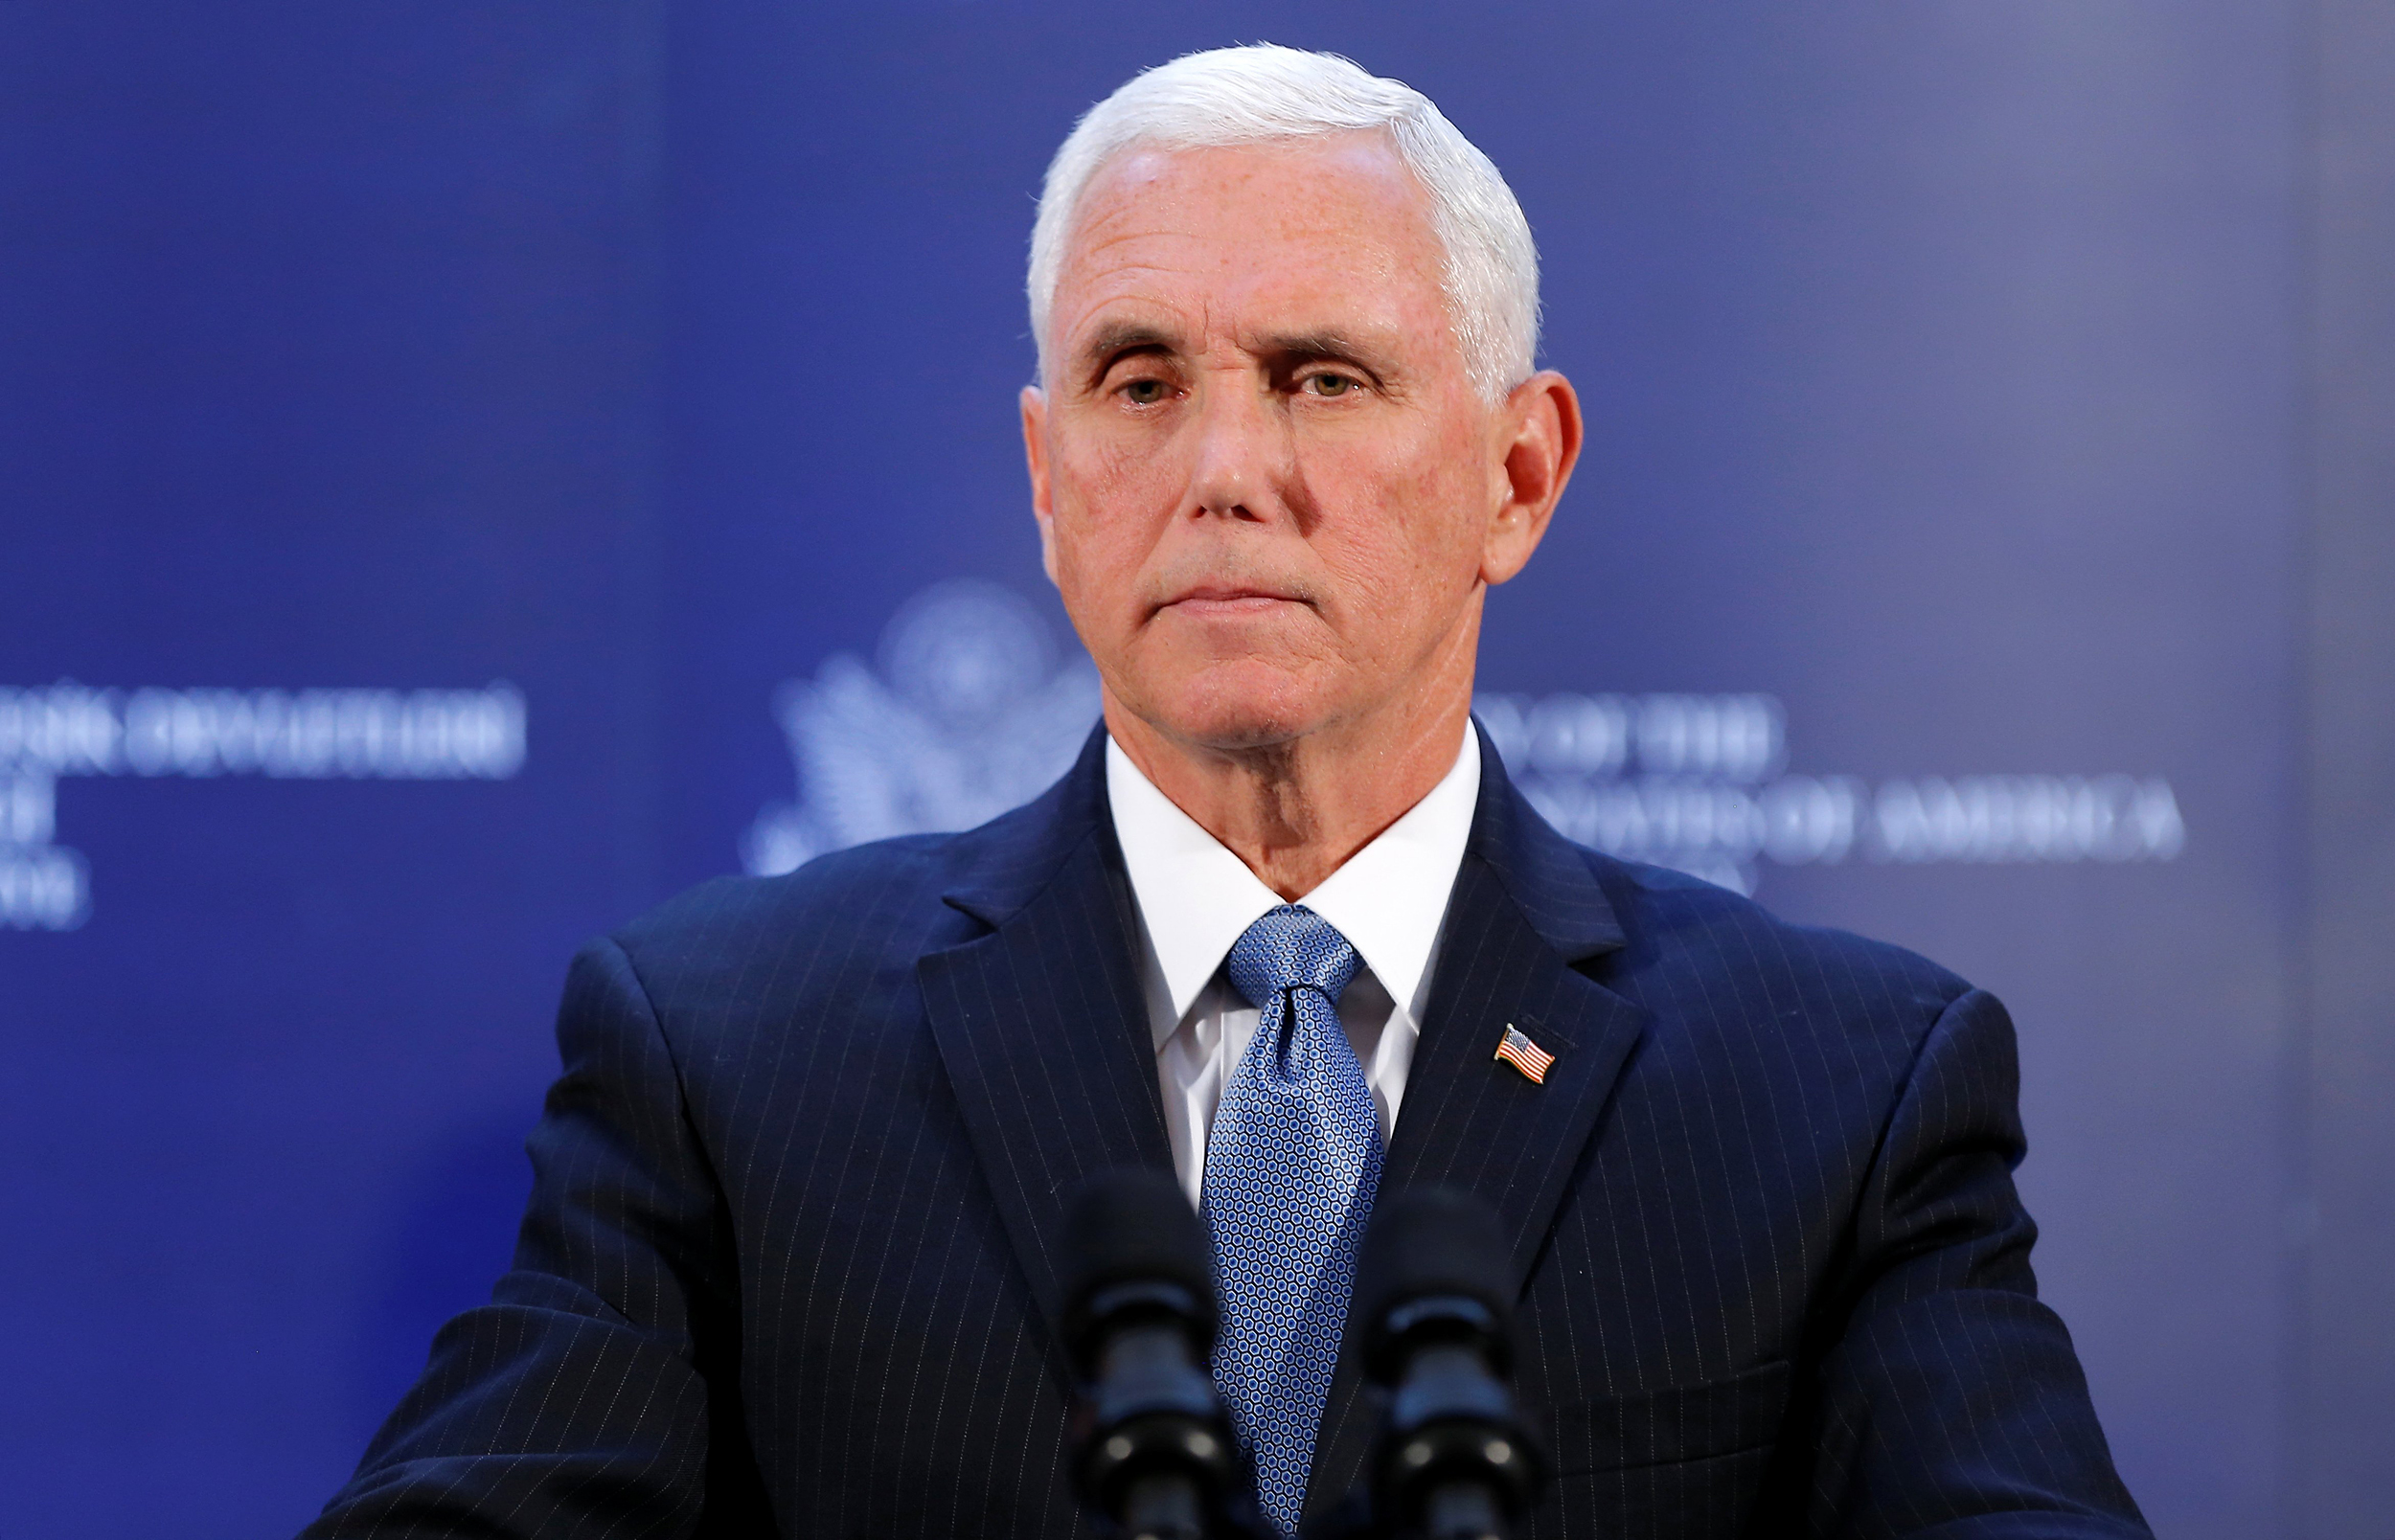 Transcript What About Pence